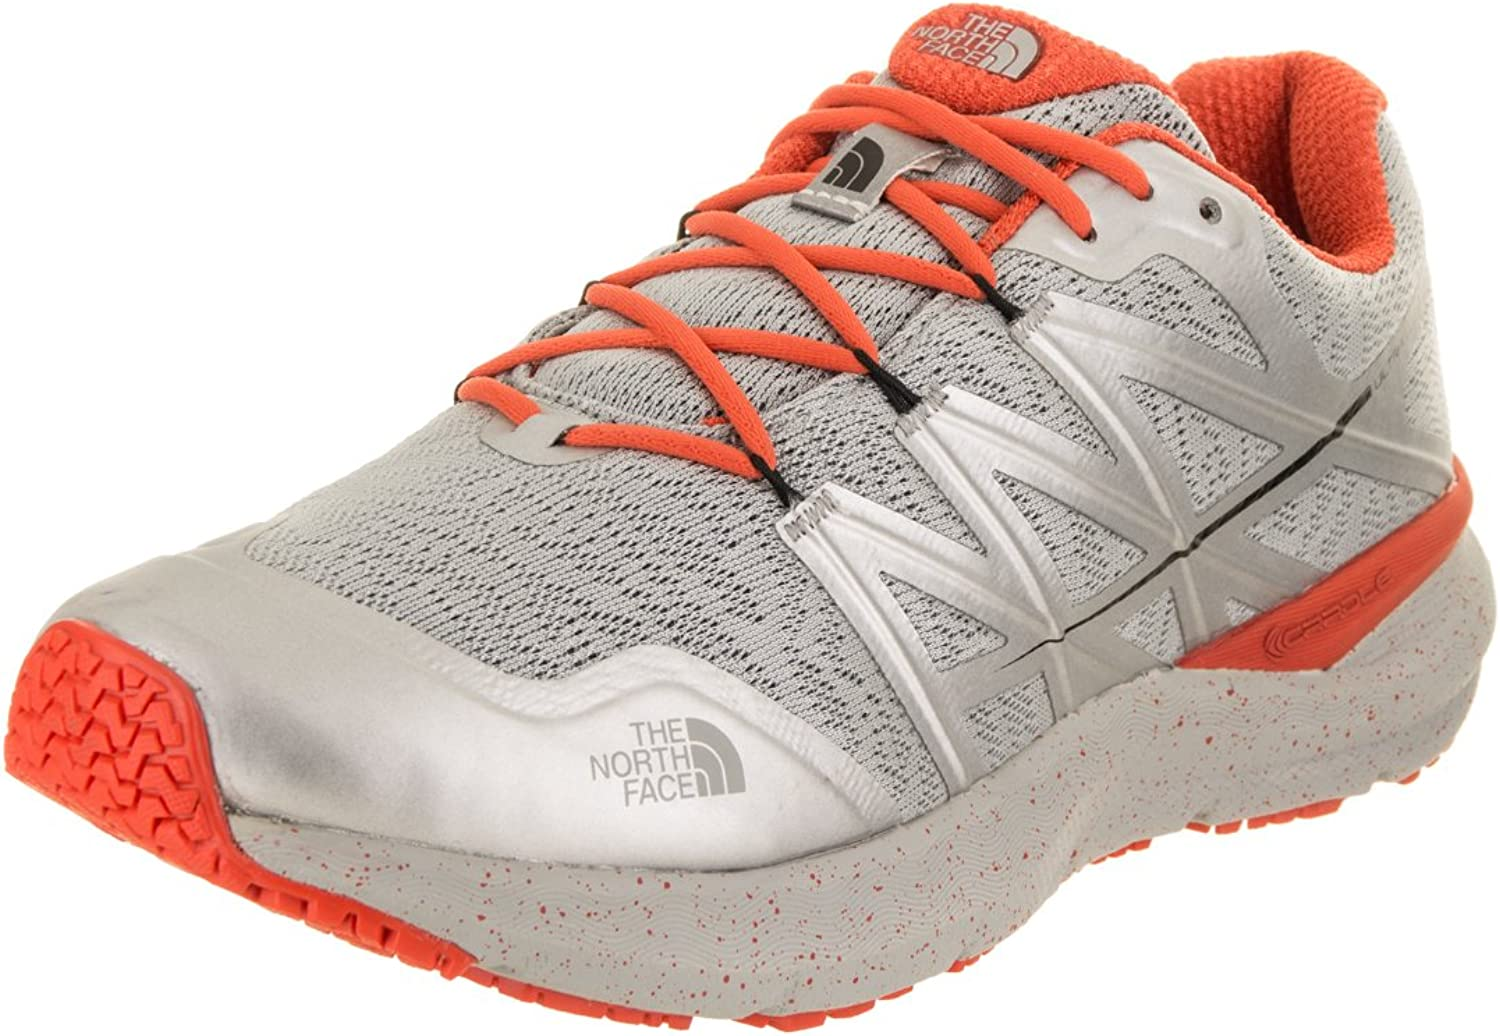 The North Face Men's Ultra Cardiac II Hiking shoes